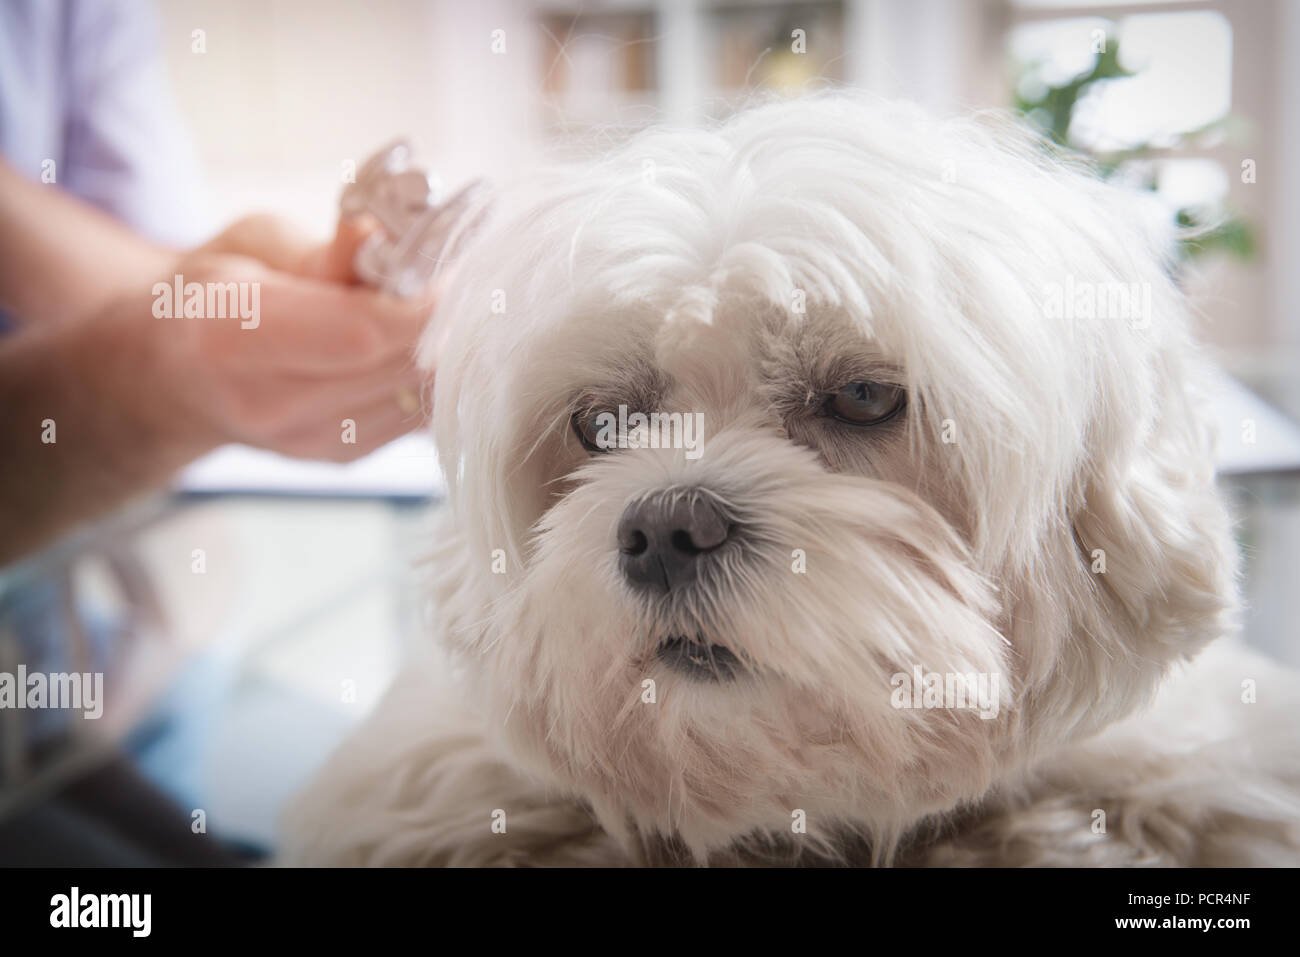 Little maltese dog at the vet office, vet with stethoscope in the background - Stock Image